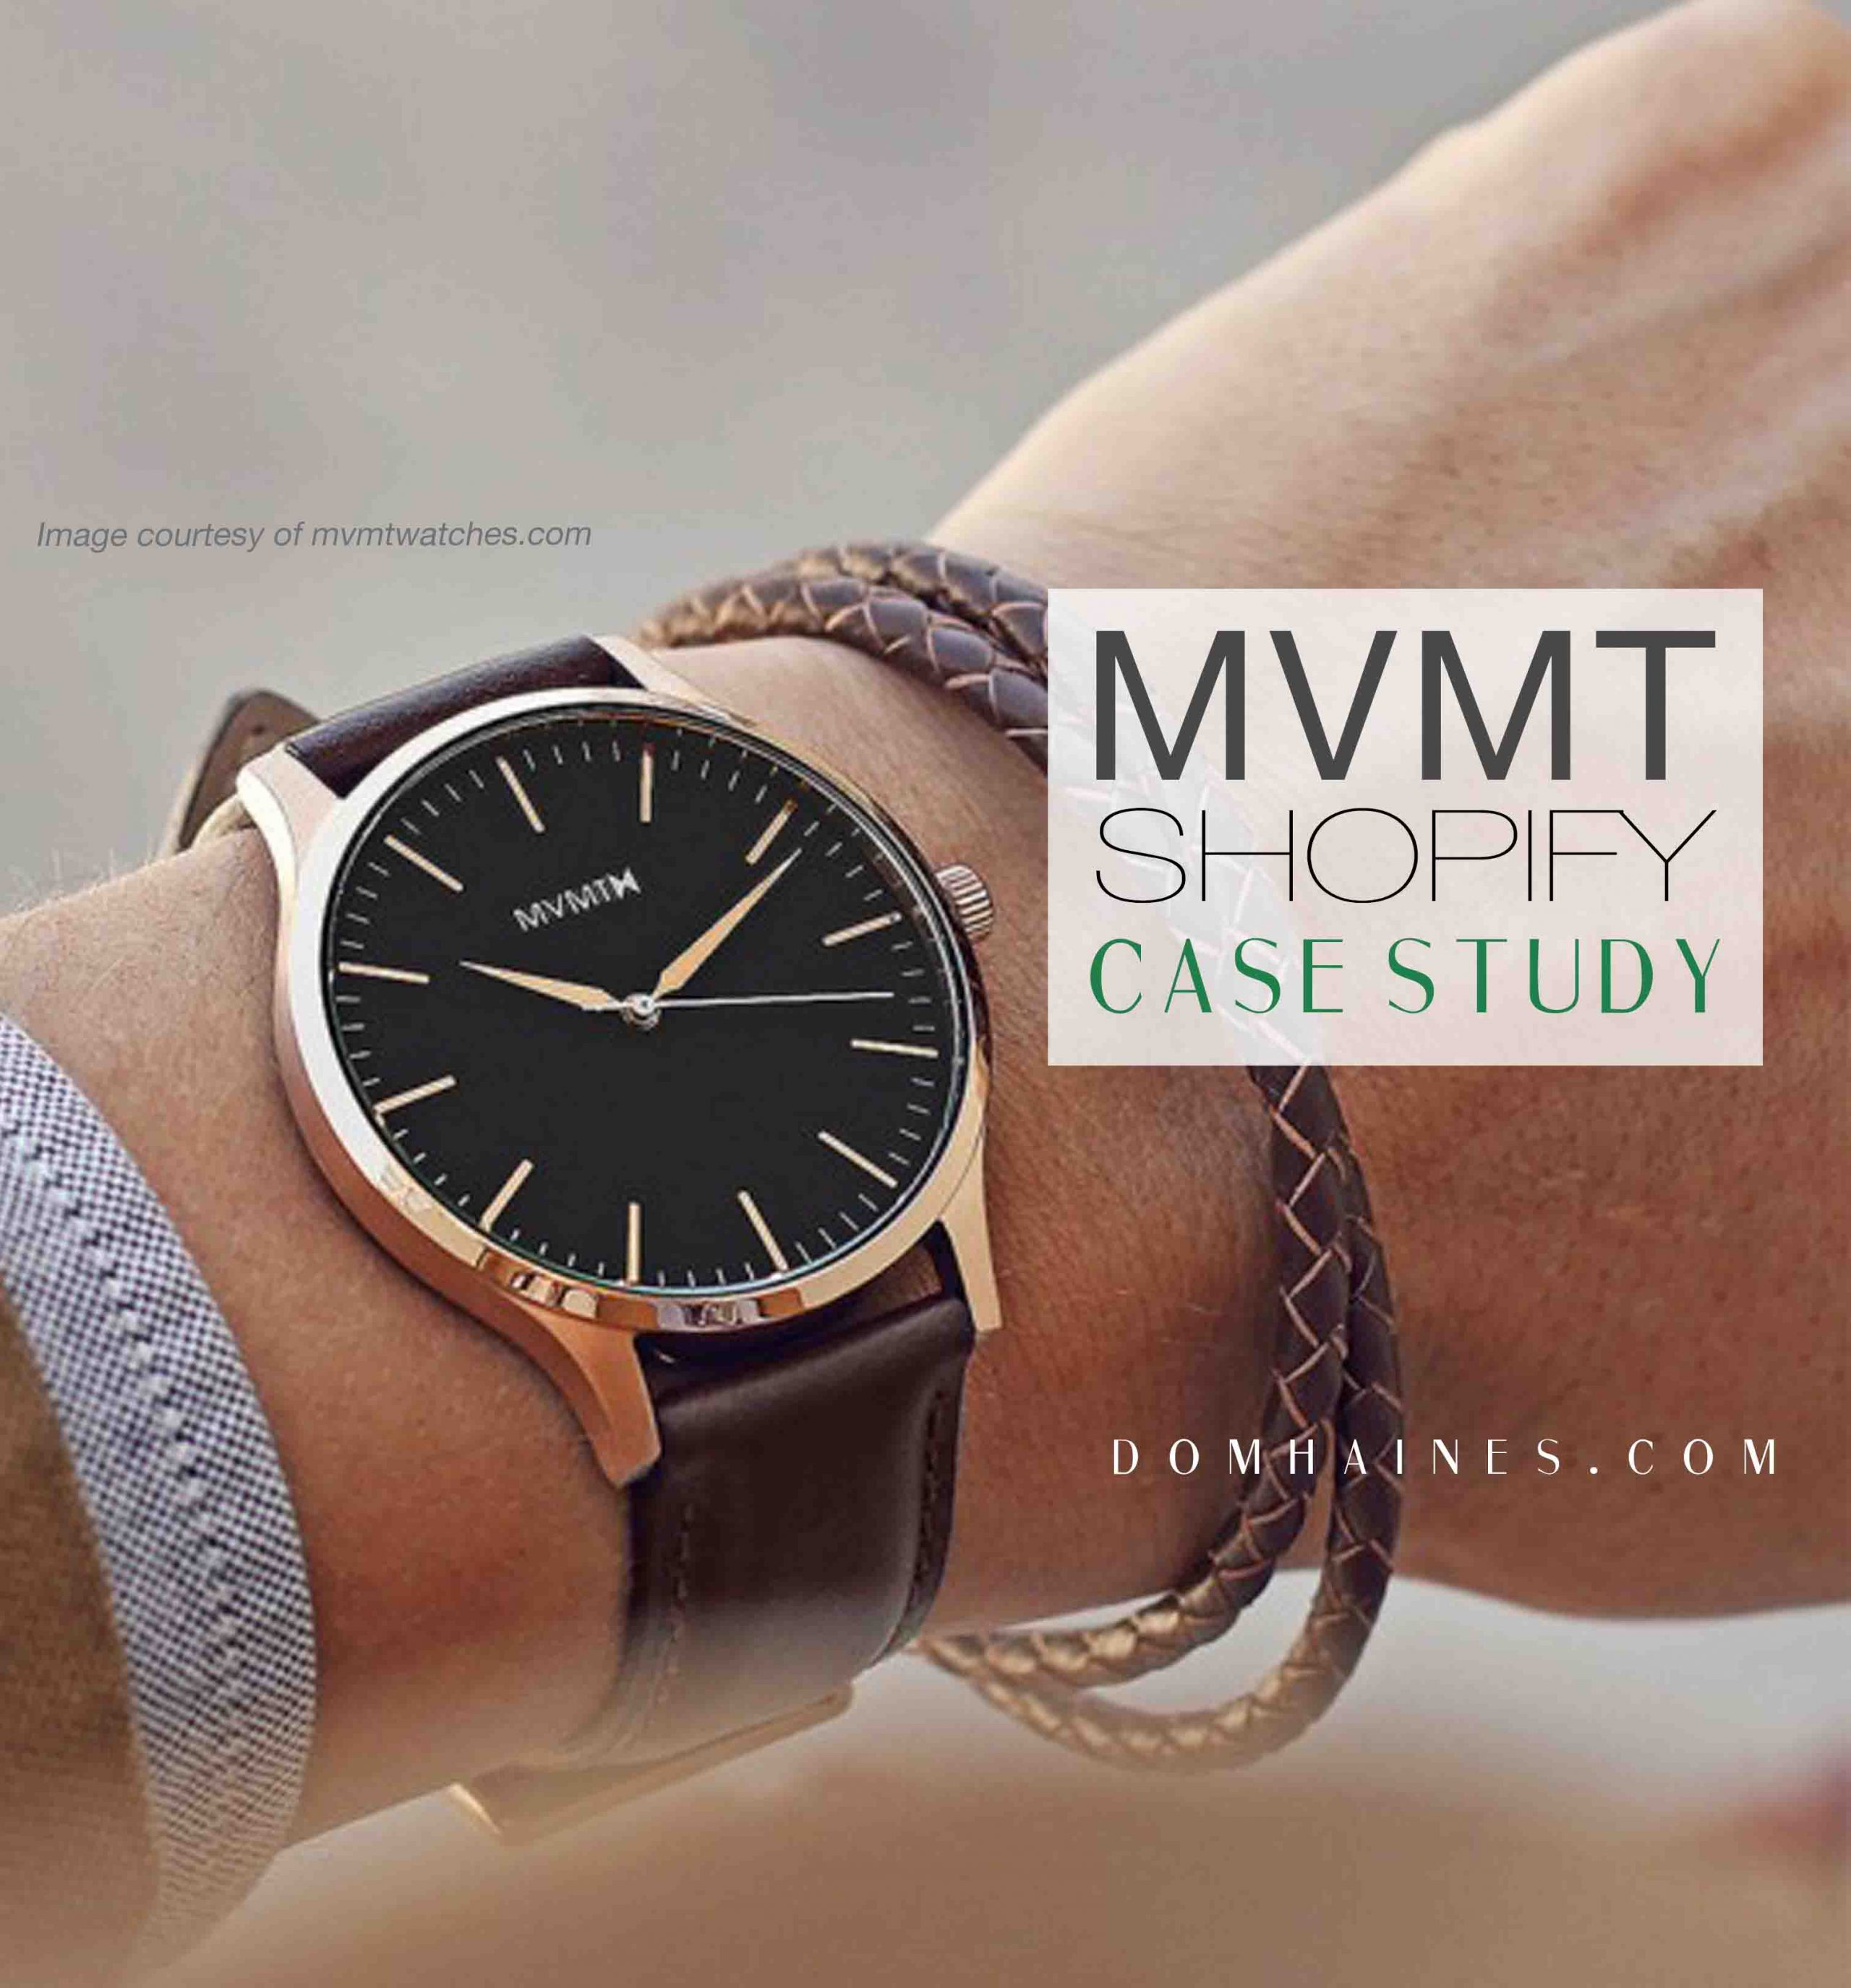 MVMT Watches: A Shopify Story (Case Study to Success) | Dom